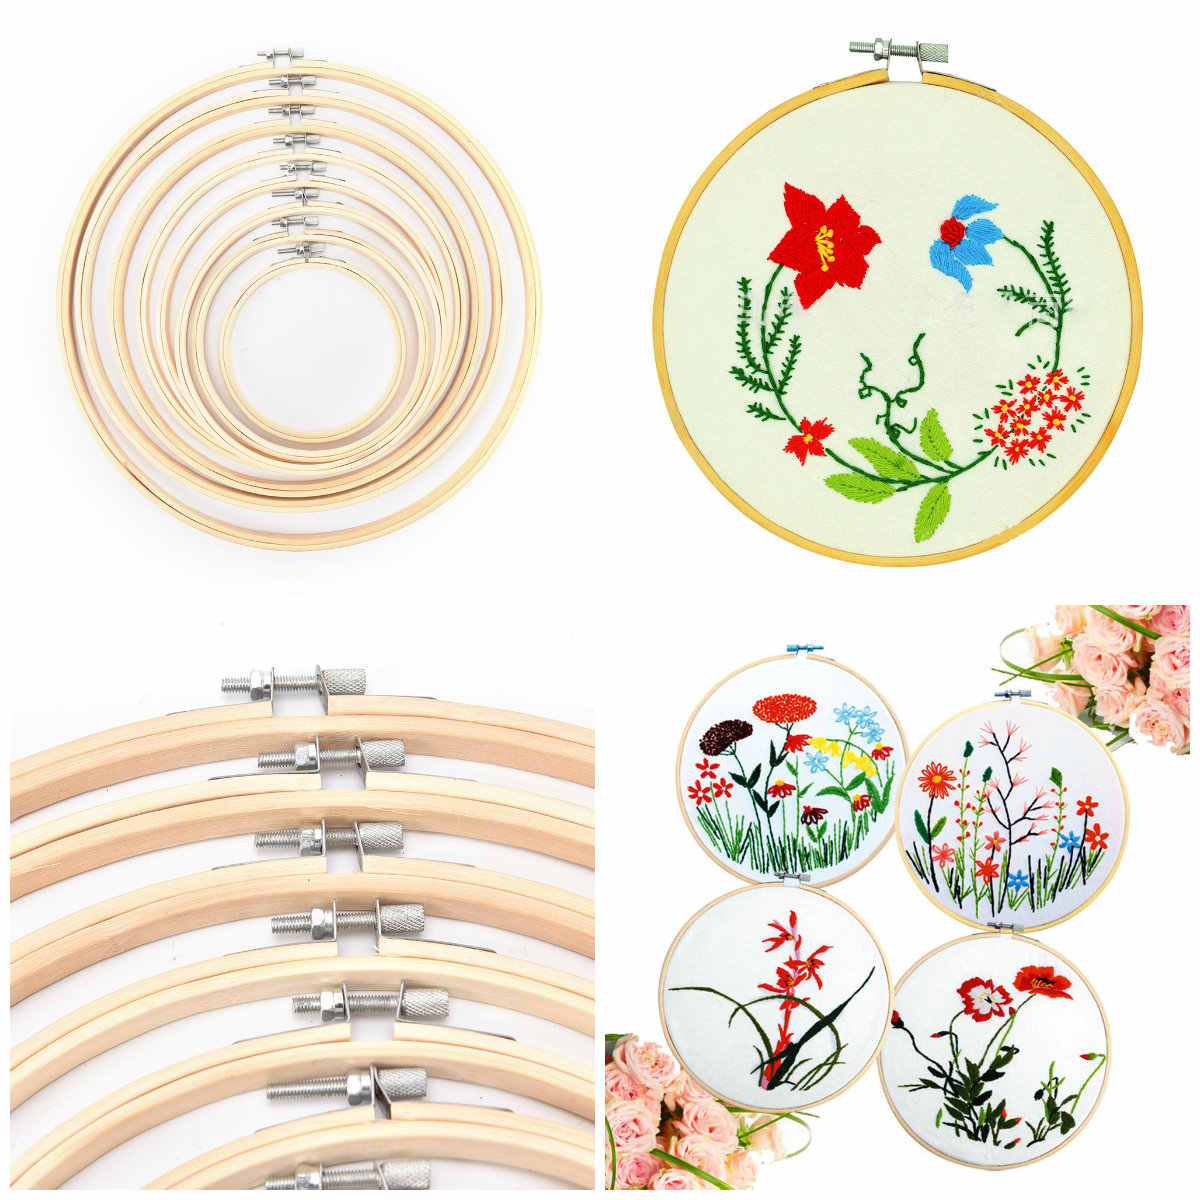 13-26cm Wooden Frame Hoop Circle Embroidery Round Machine Bamboo For Cross Stitch Hand DIY Household Craft Sewing Needwork Tool